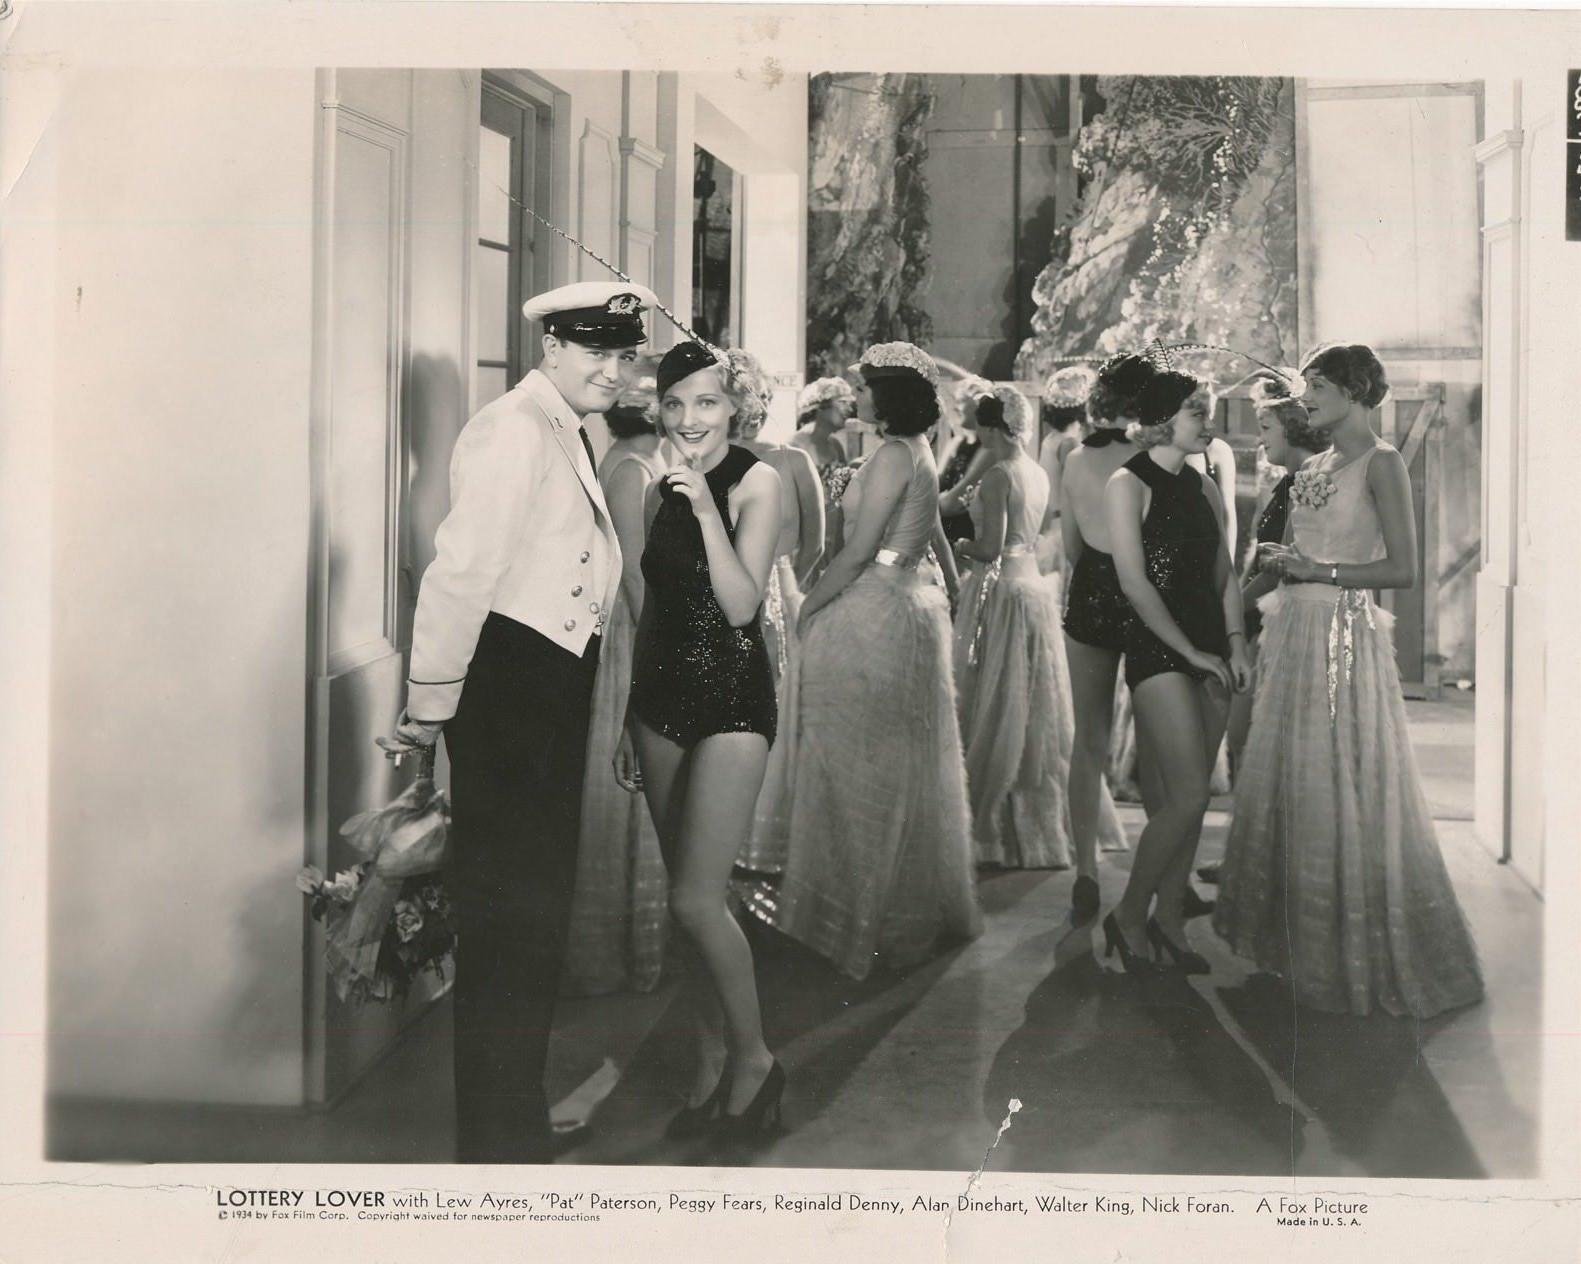 Lew Ayres, Alyce Ardell, Marie Burton, Peggy Fears, and Pat Paterson in Lottery Lover (1935)